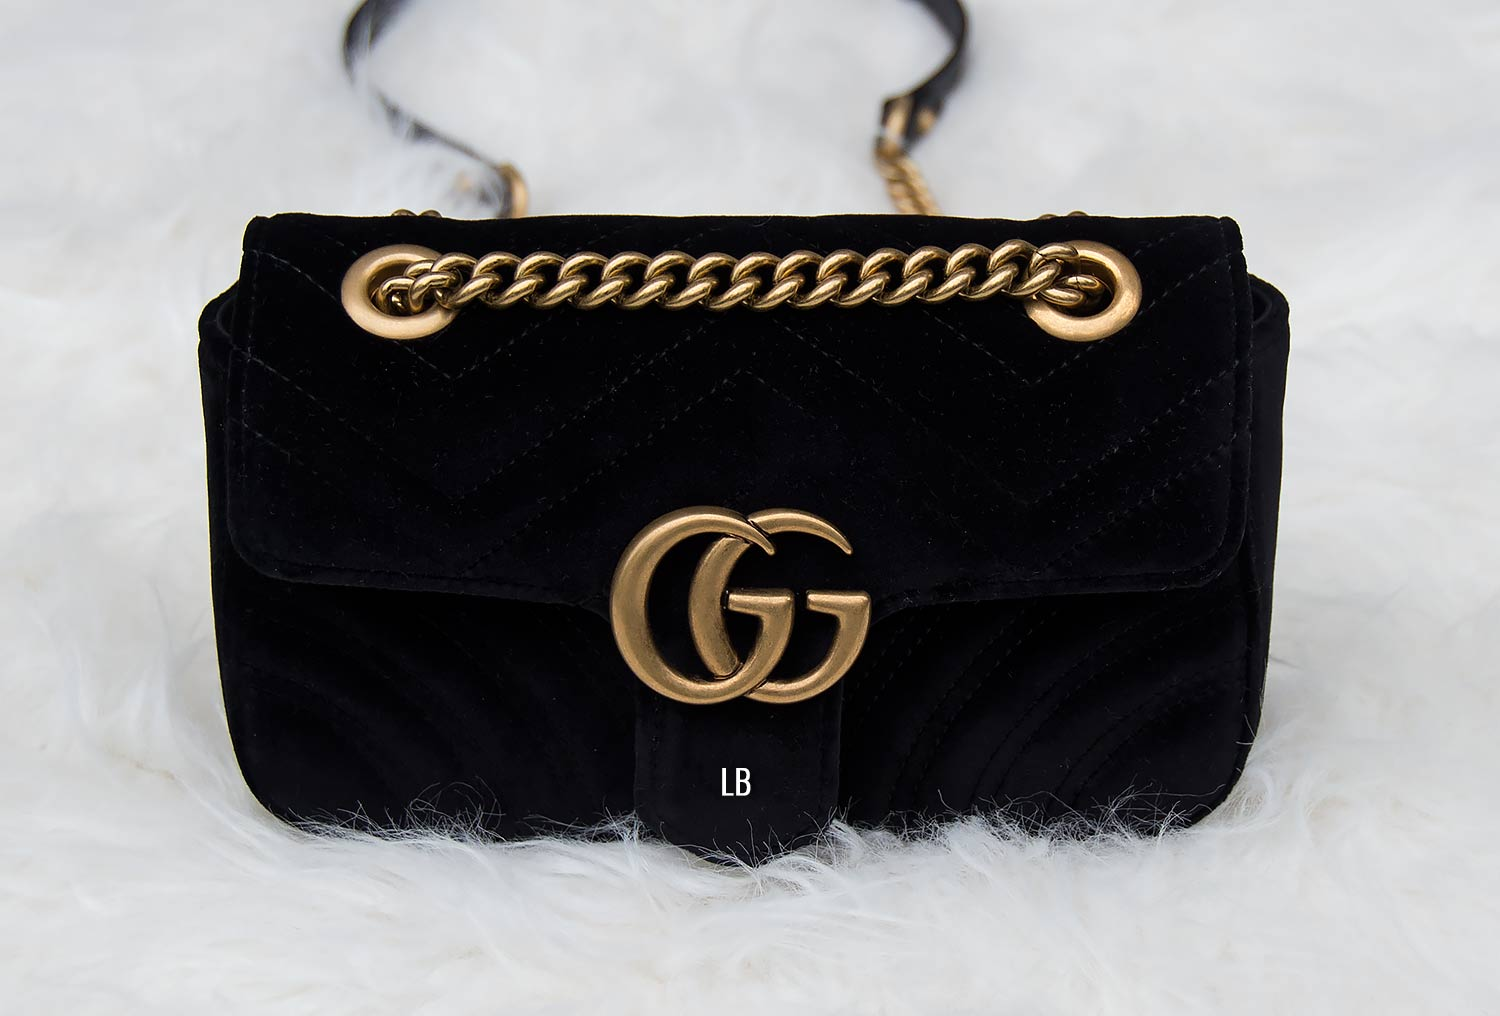 220d2f37932b Gucci GG Marmont Velvet Mini Bag Review | Raindrops of Sapphire